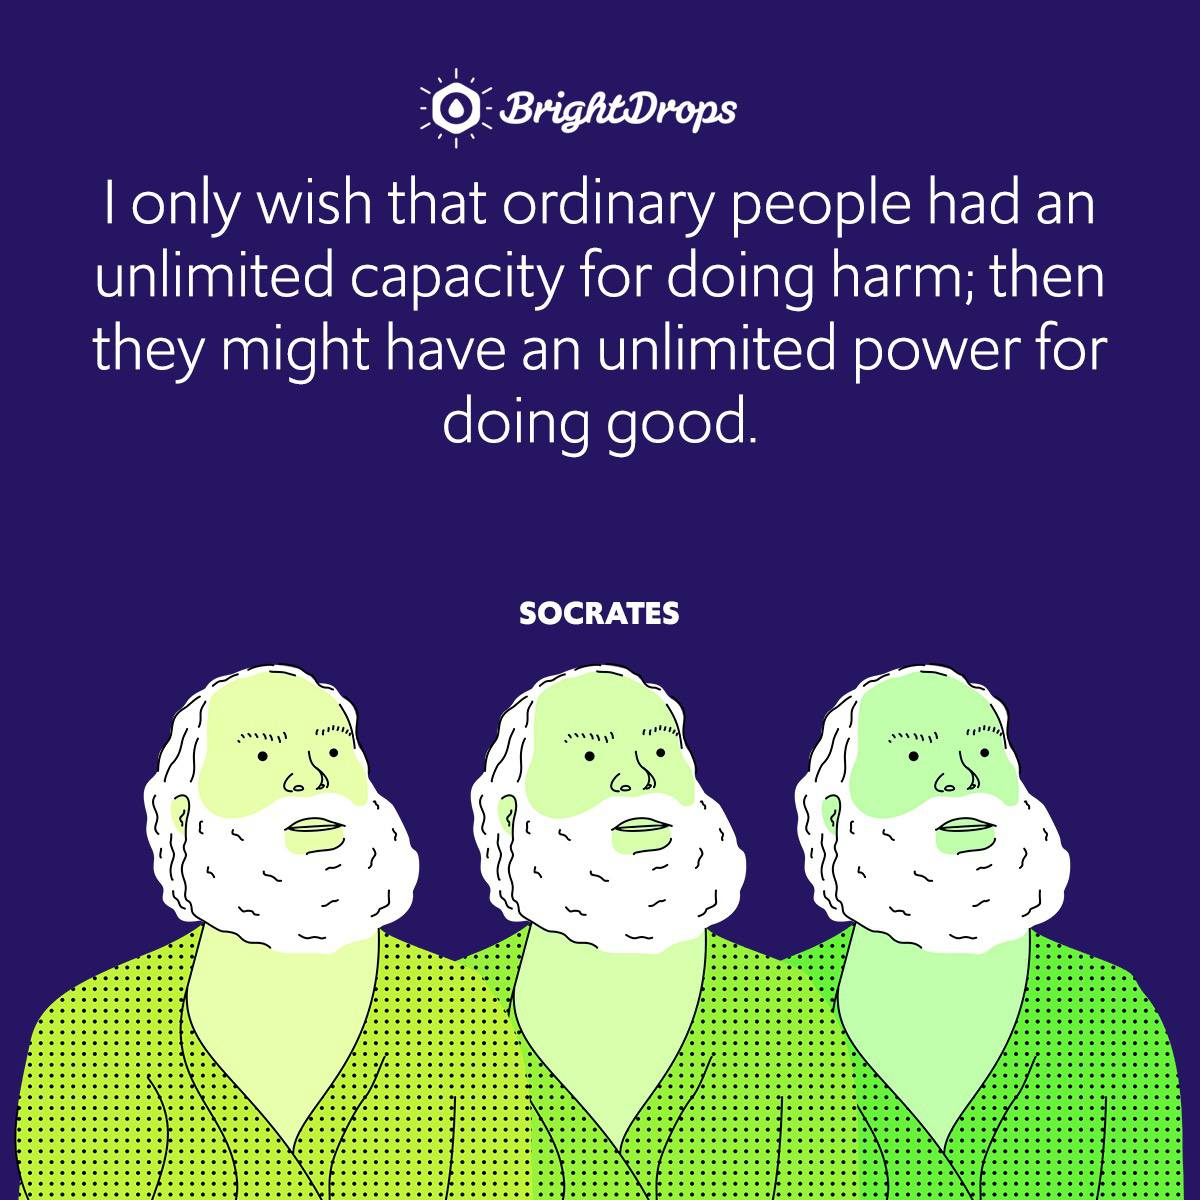 I only wish that ordinary people had an unlimited capacity for doing harm; then they might have an unlimited power for doing good.